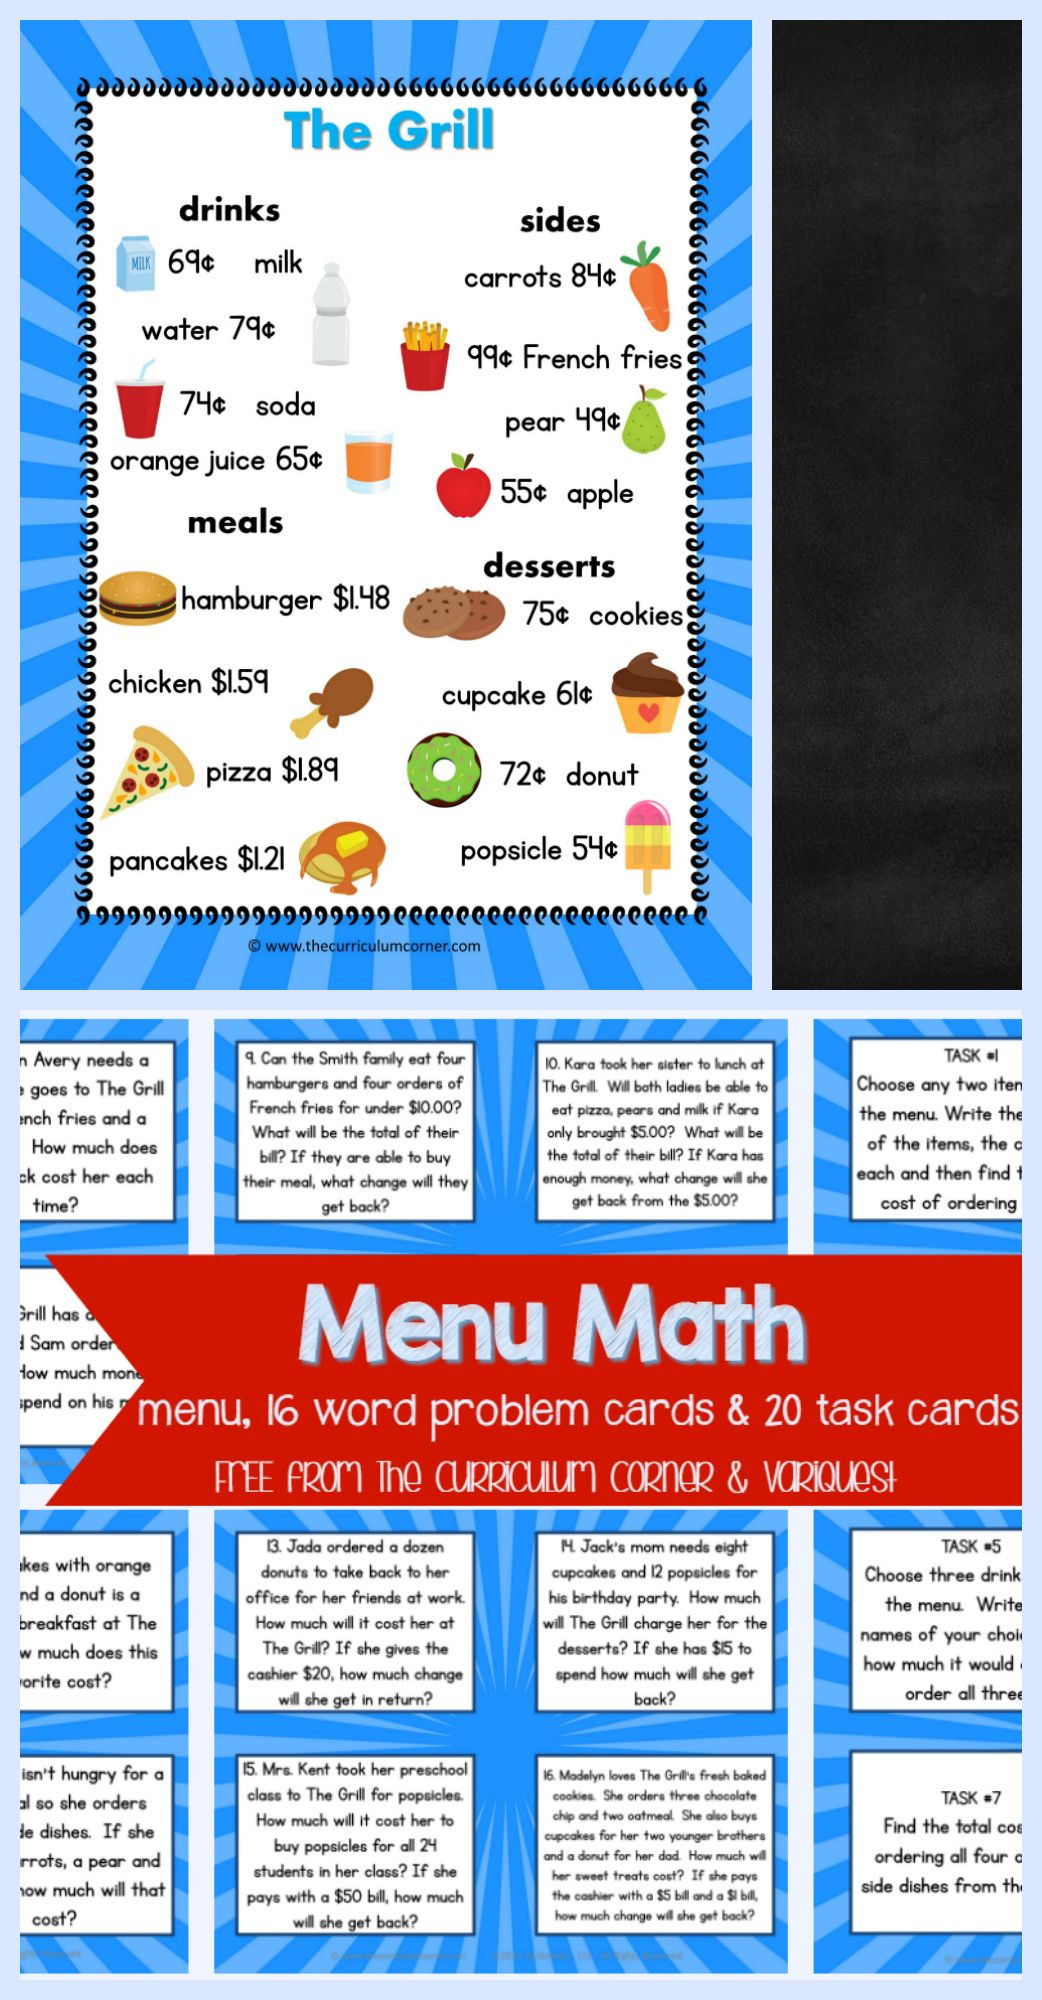 Free Menu Math Worksheets Menu Math for 4th & 5th Graders